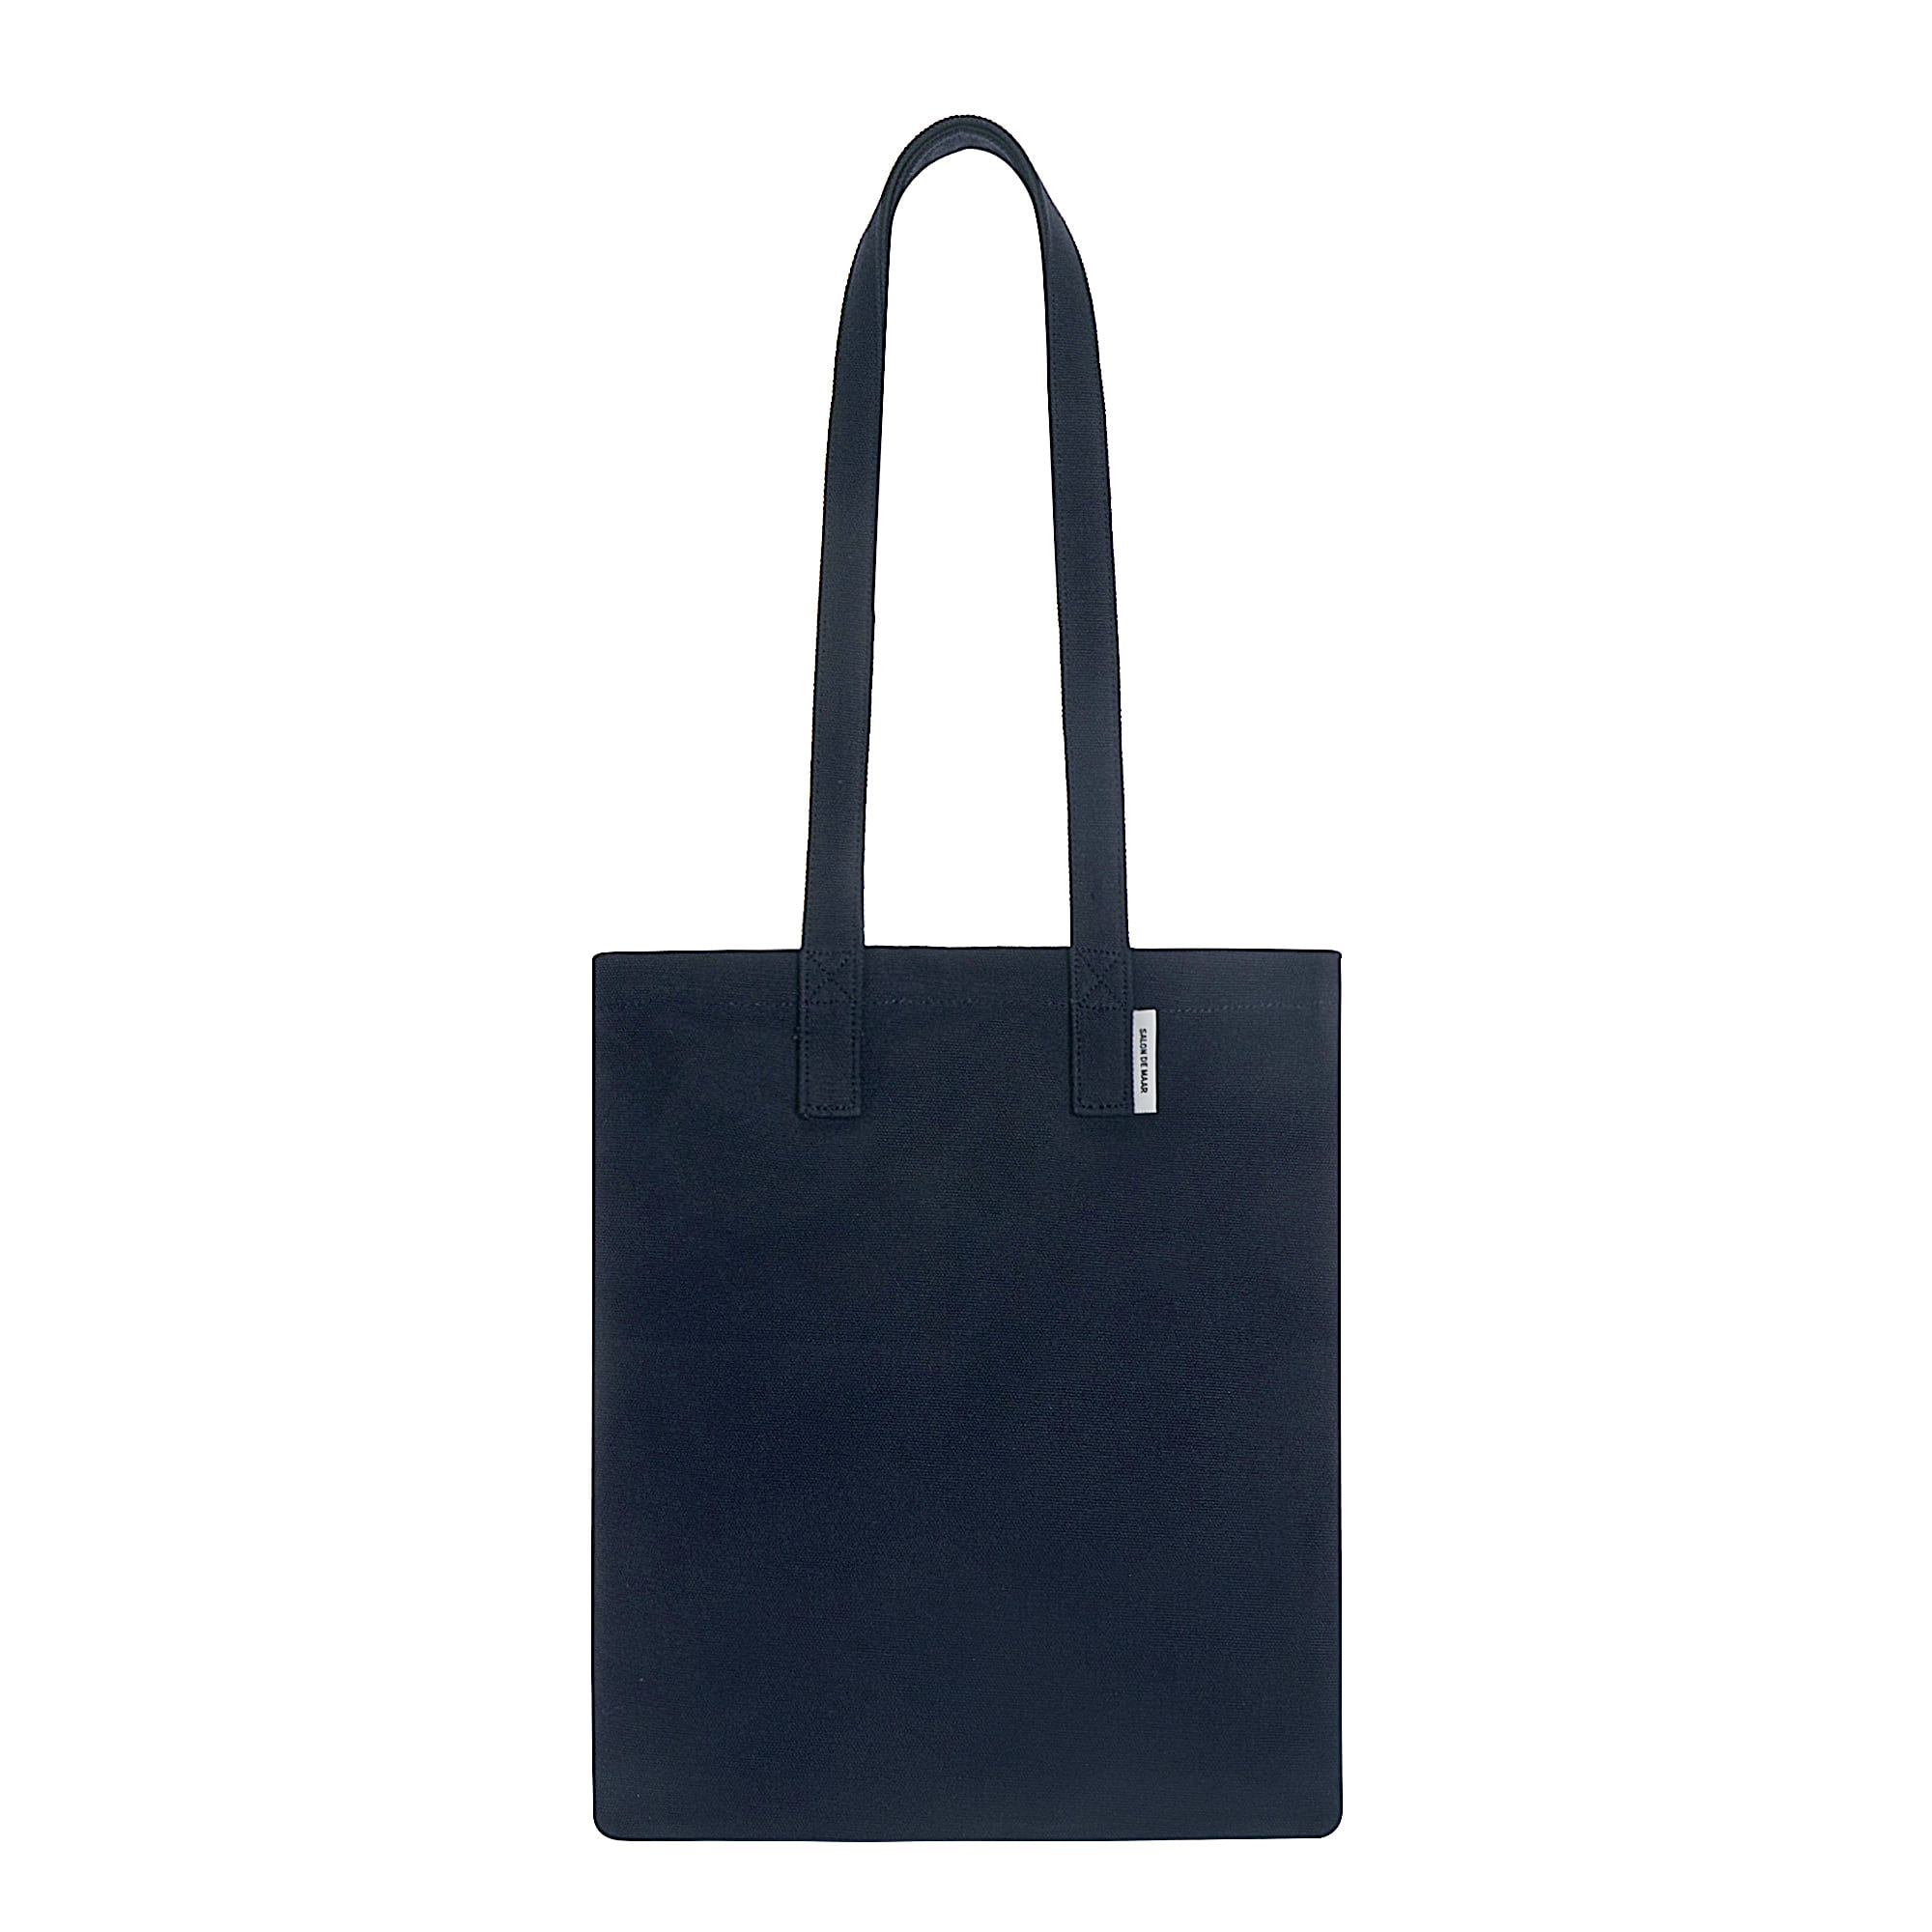 BERCY ECO-BAG NAVY